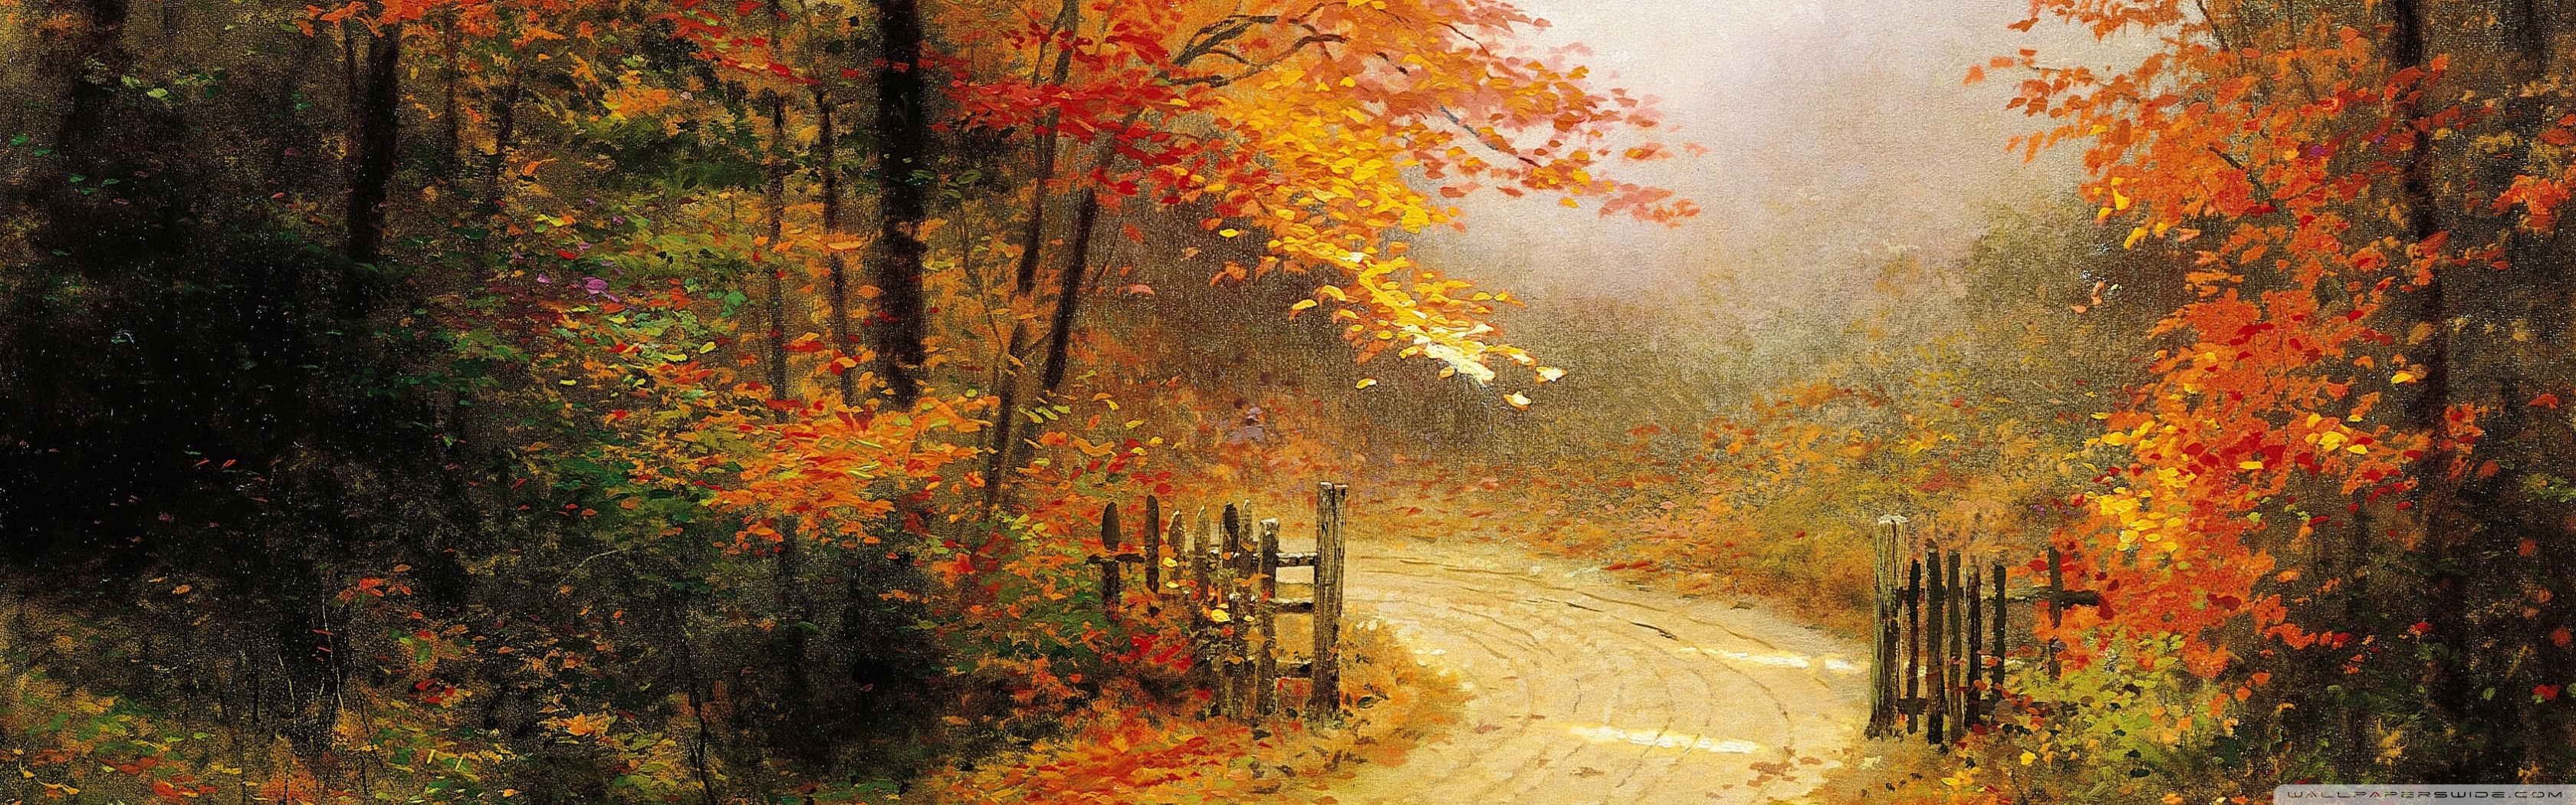 Thomas Kinkade Fall Desktop Wallpaper Autumn Lane Wallpaper 3360x1050 29008